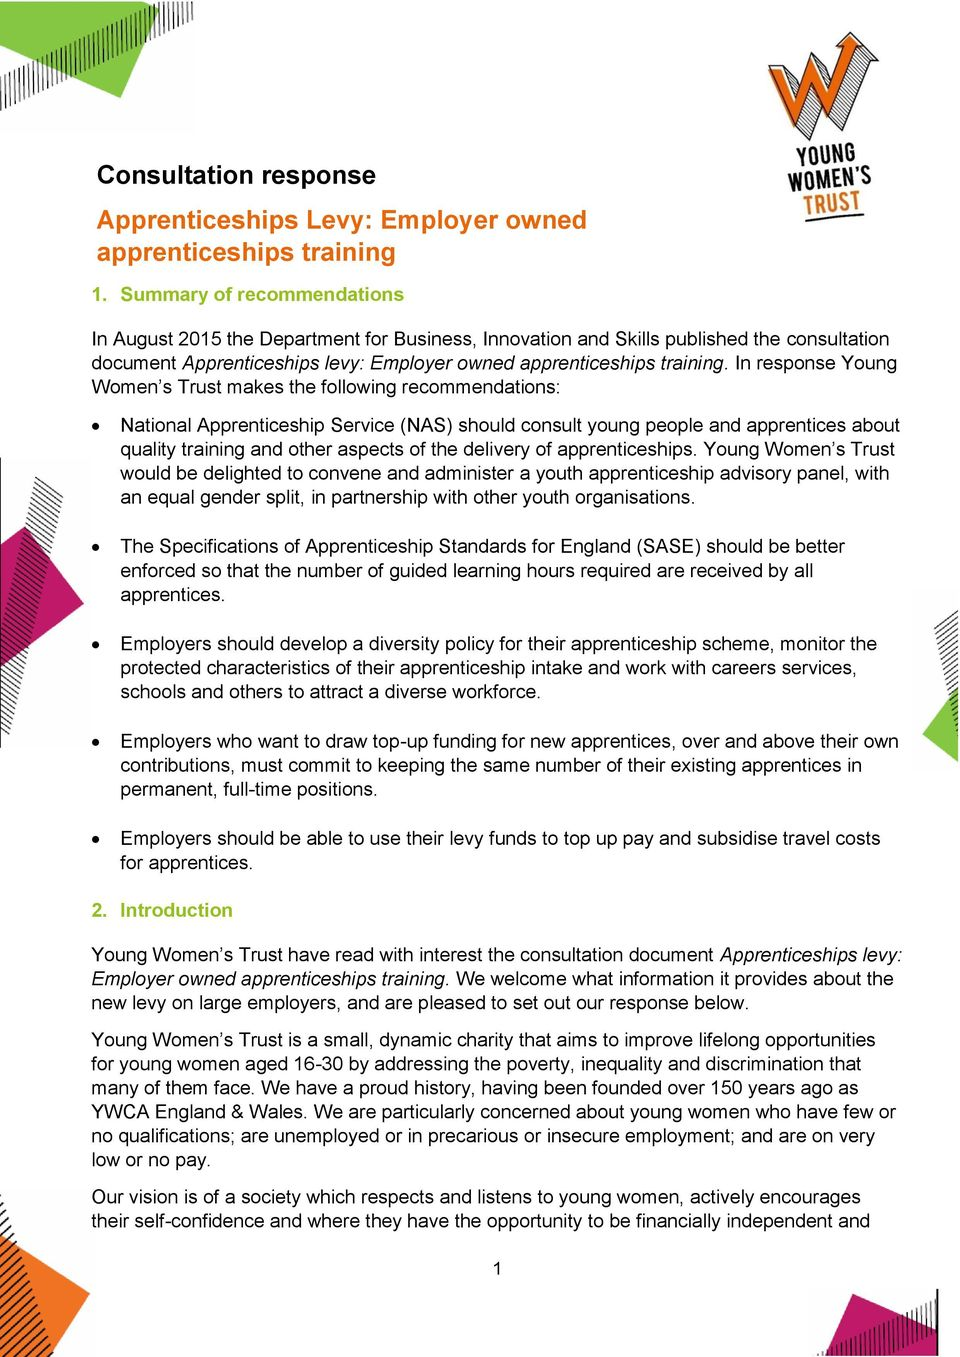 In response Young Women s Trust makes the following recommendations: National Apprenticeship Service (NAS) should consult young people and apprentices about quality training and other aspects of the